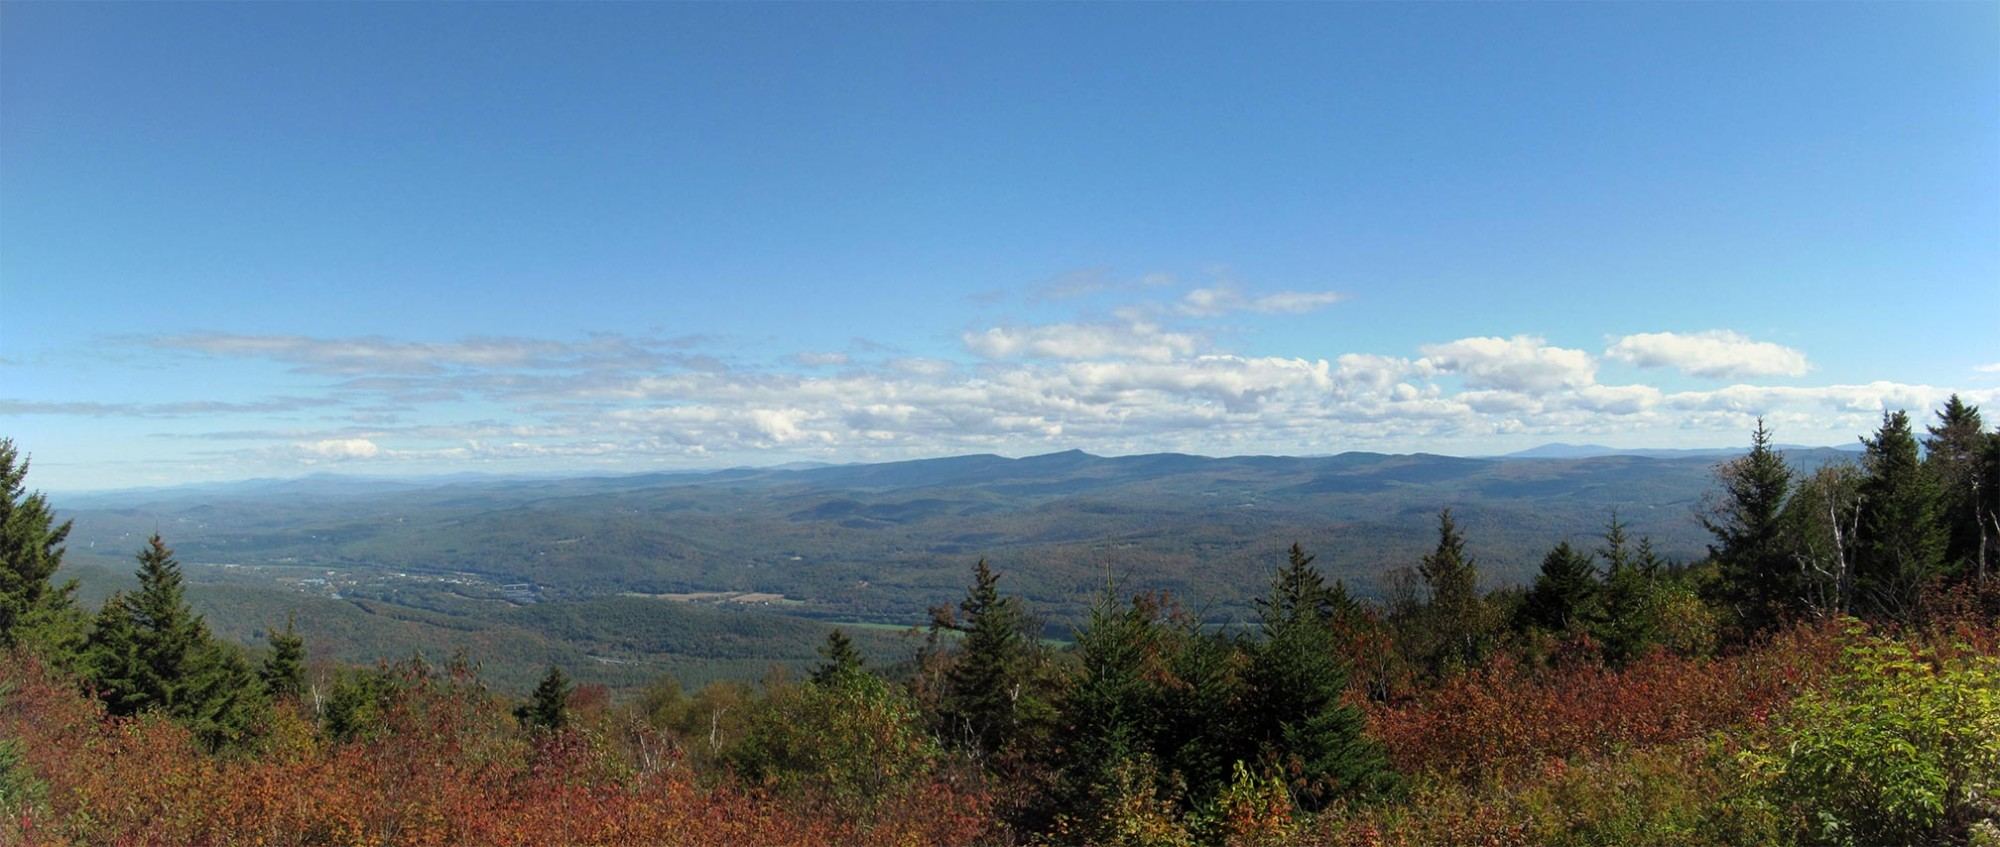 Views from Mount Ascutney State Park